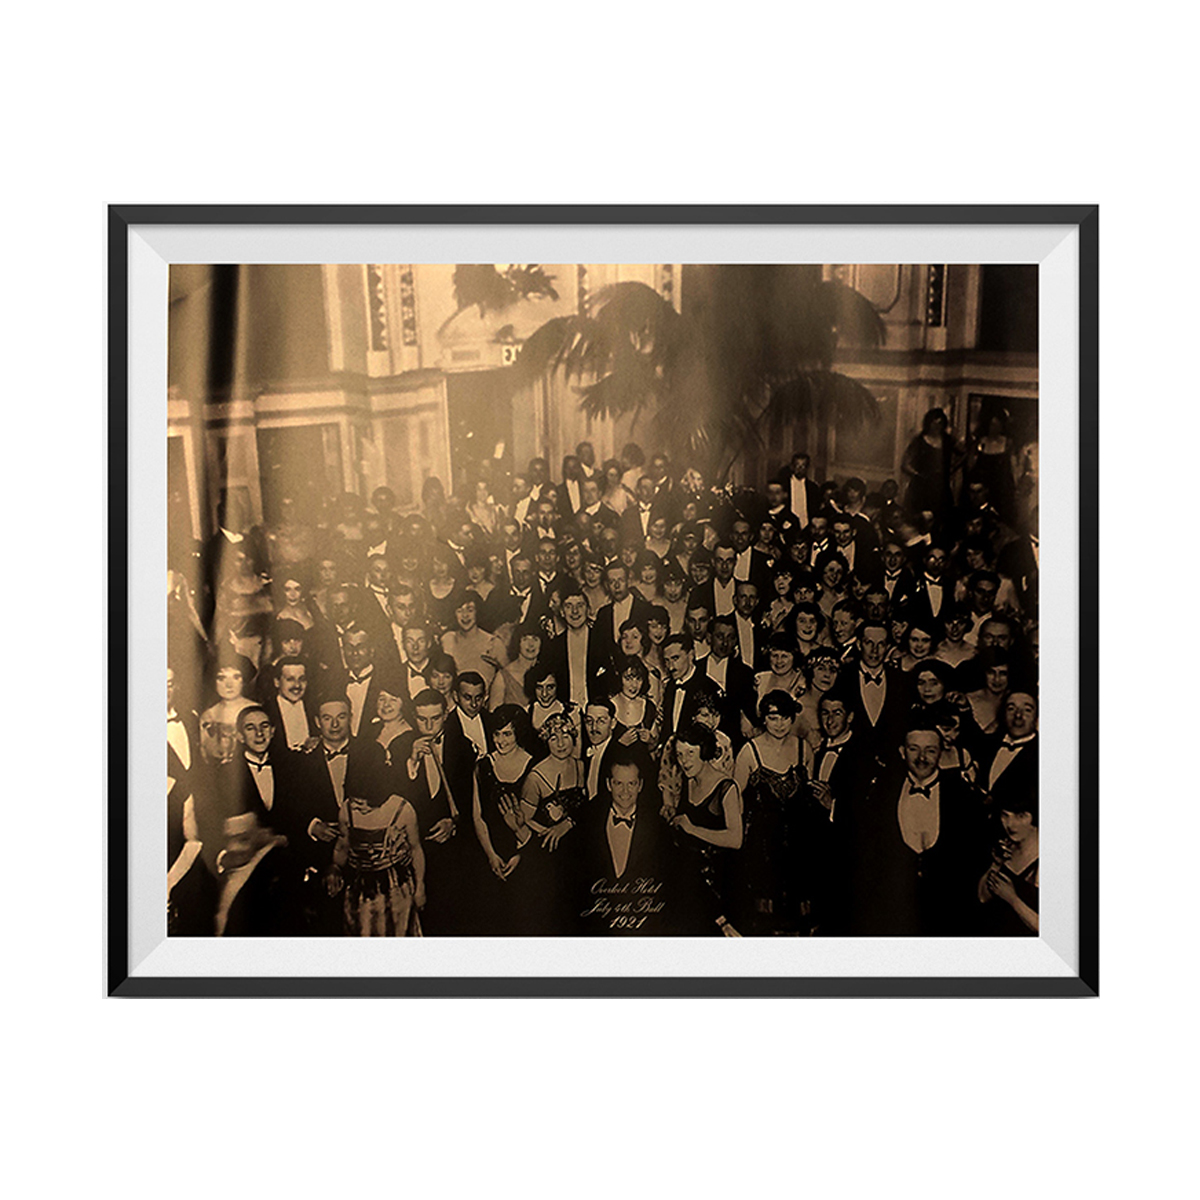 The Shining Overlook Hotel Ballroom Photograph Jack Nicholson Movie Poster Print - image 1 of 1